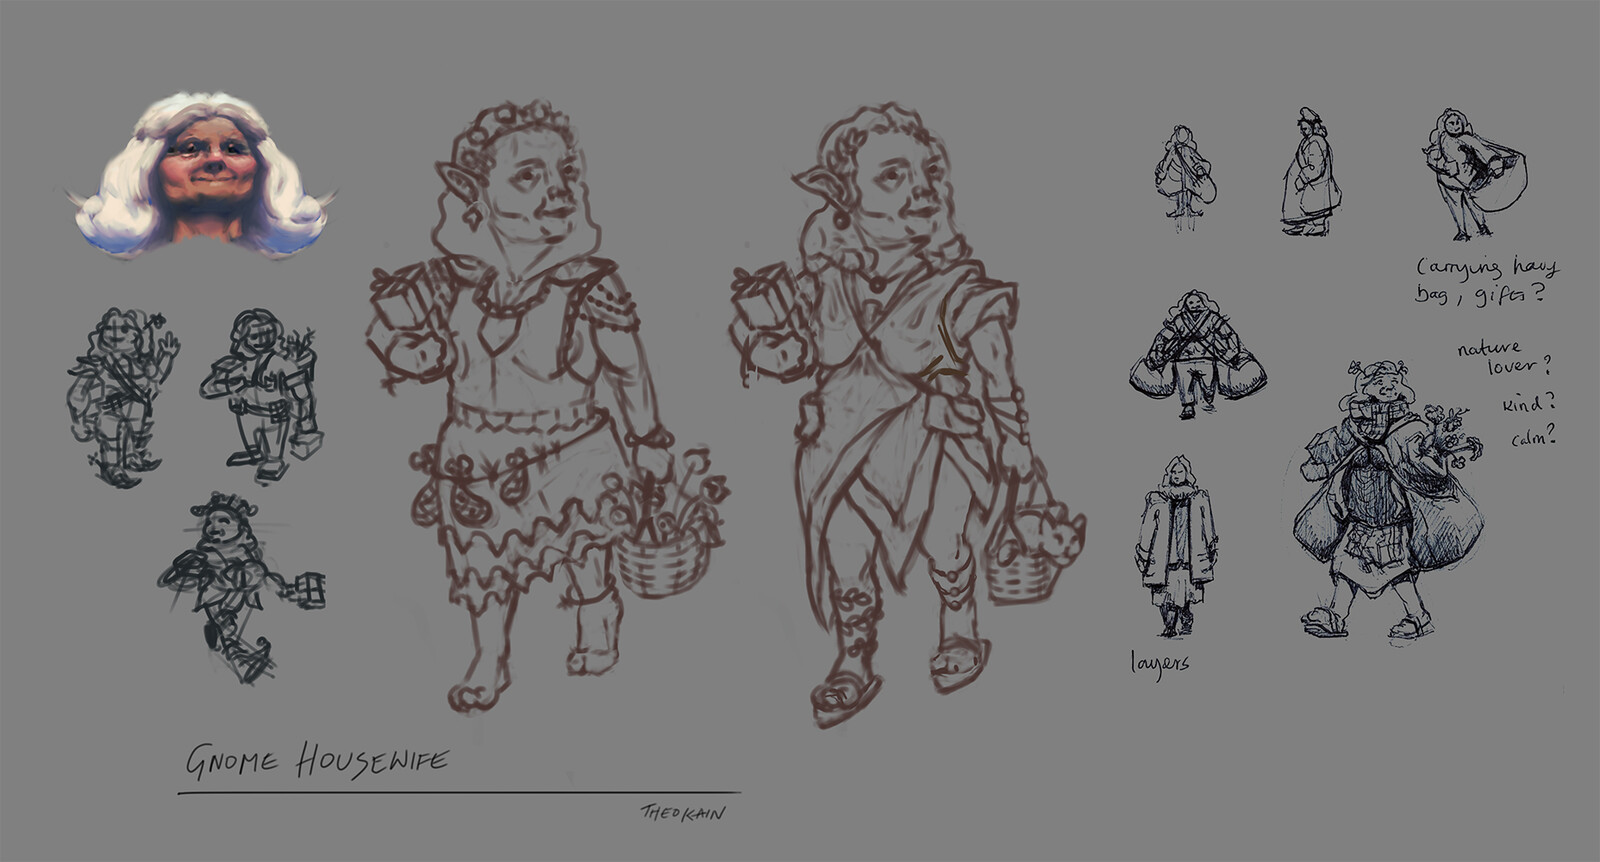 Character explorations, what does a gnome housewife with nice clothes and in touch with nature look like?